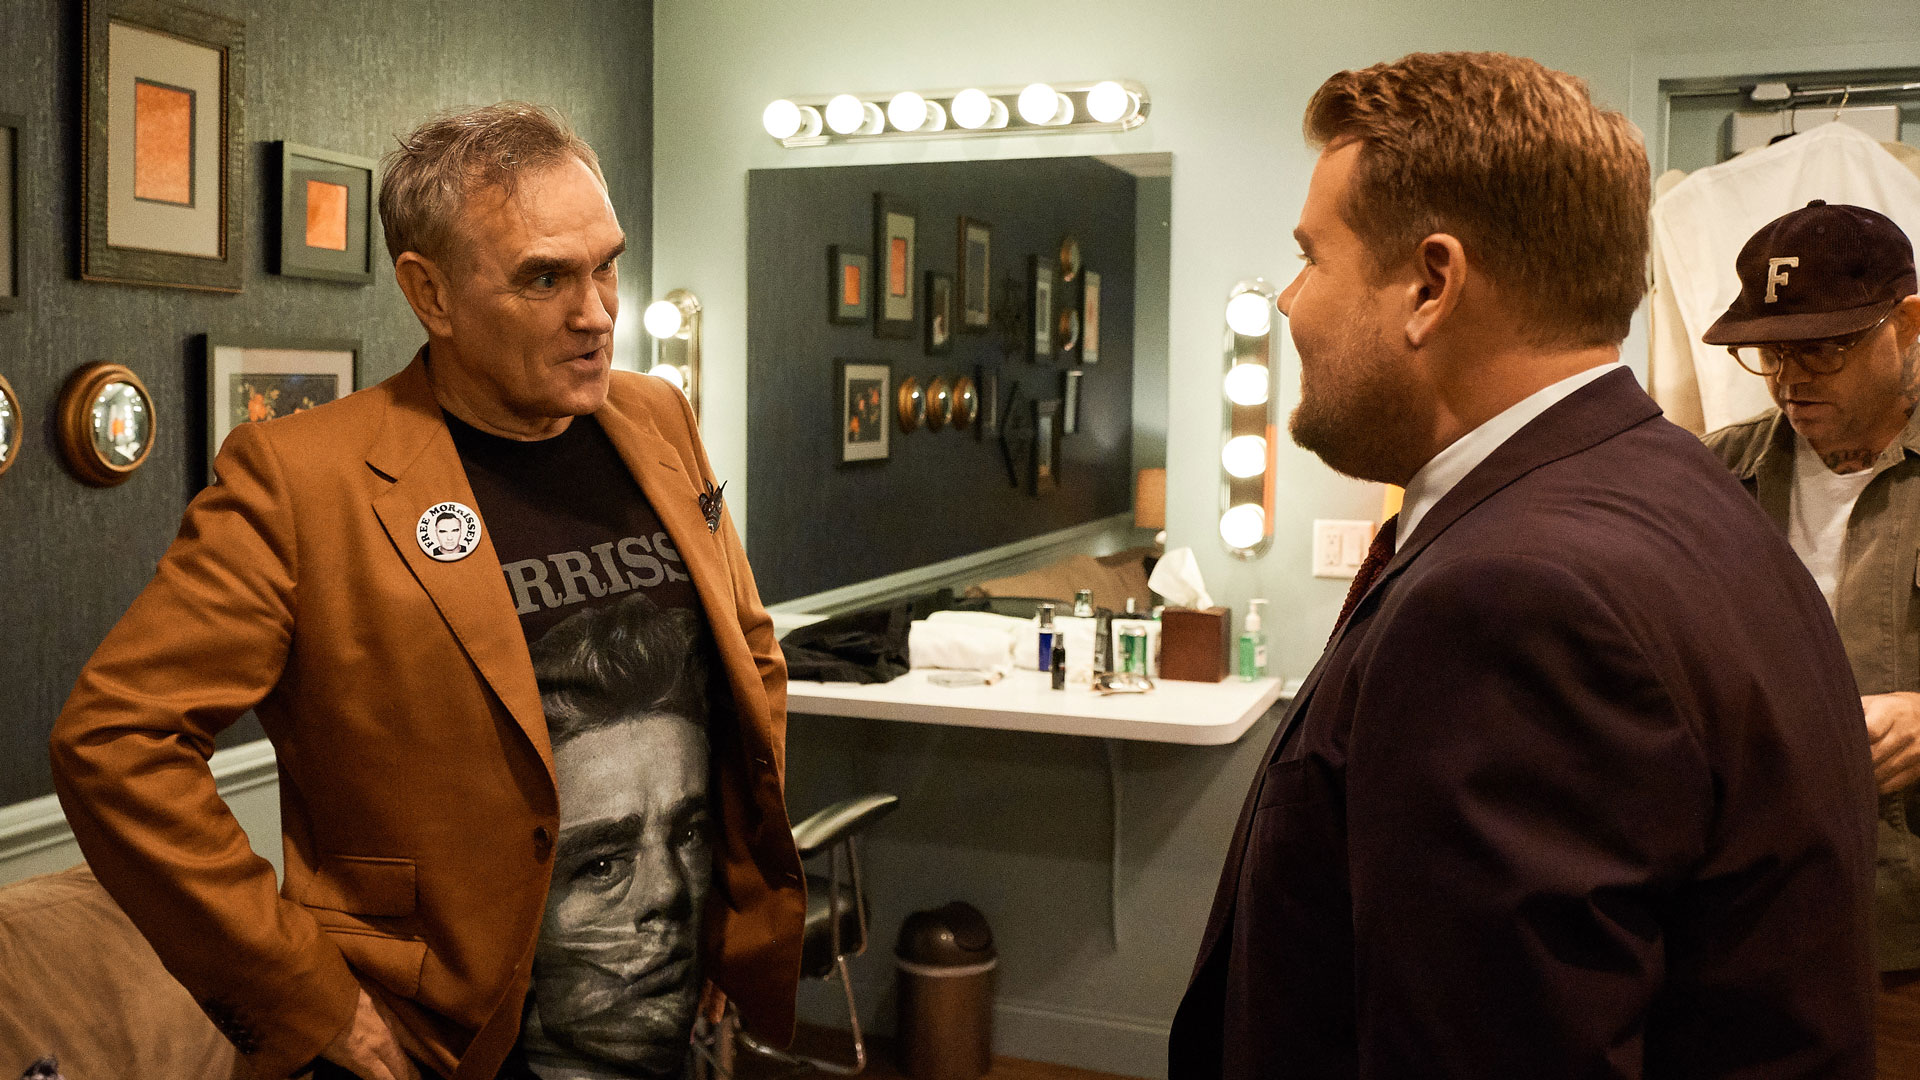 James and Morrissey prep before the show